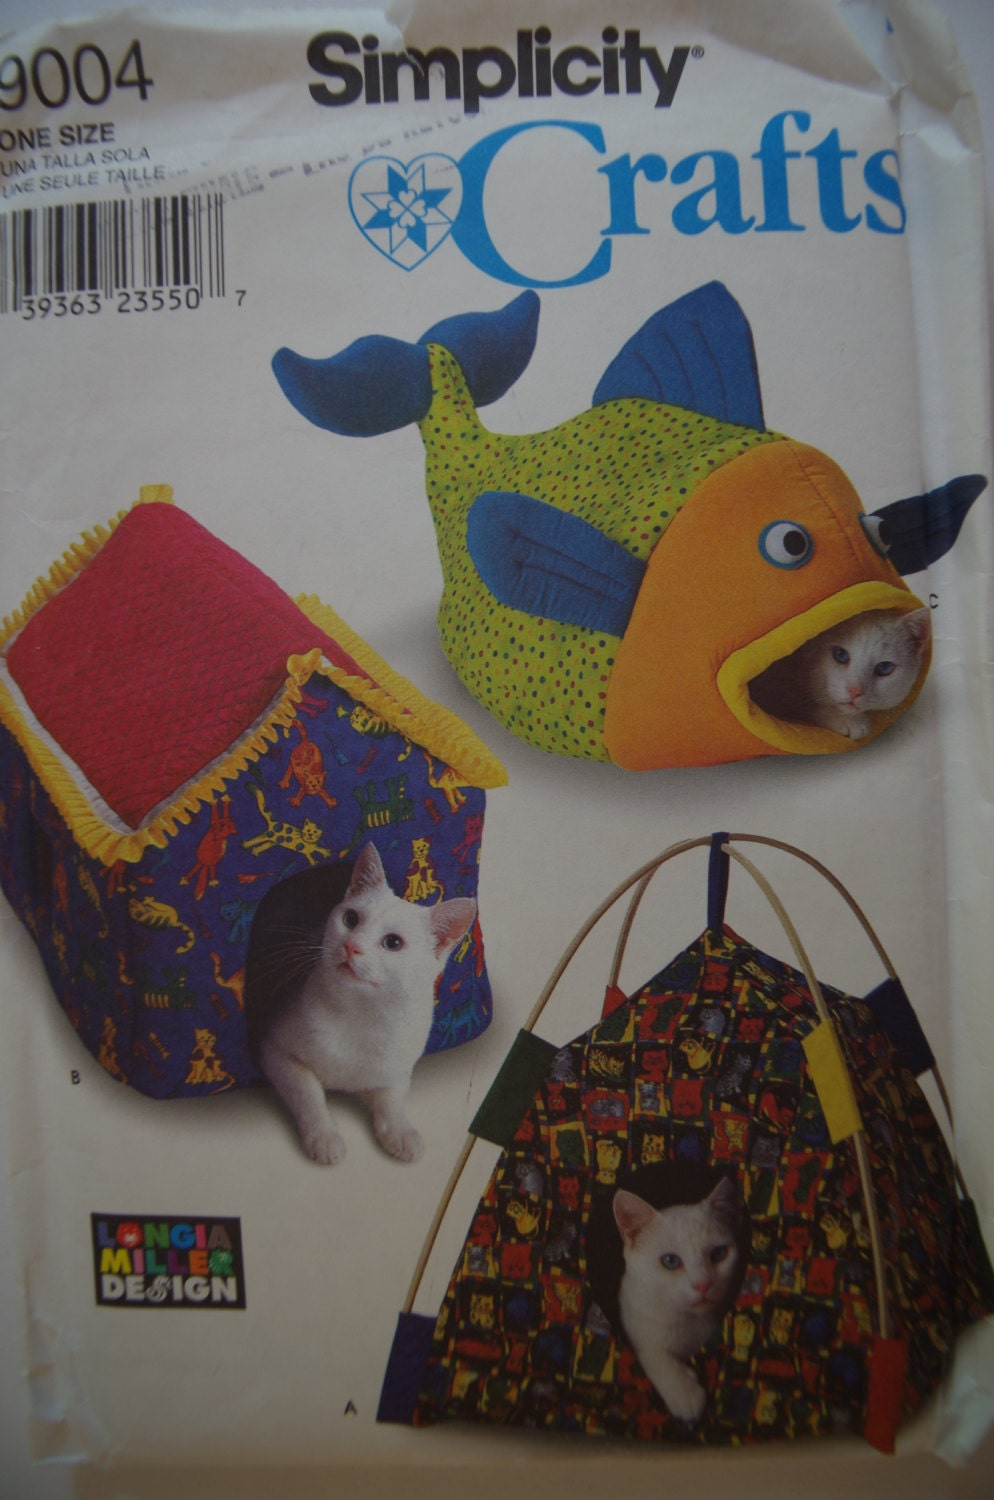 Cat crafts cat bed longia miller design sewing pattern uncut ff sold by mysterytrunk jeuxipadfo Gallery